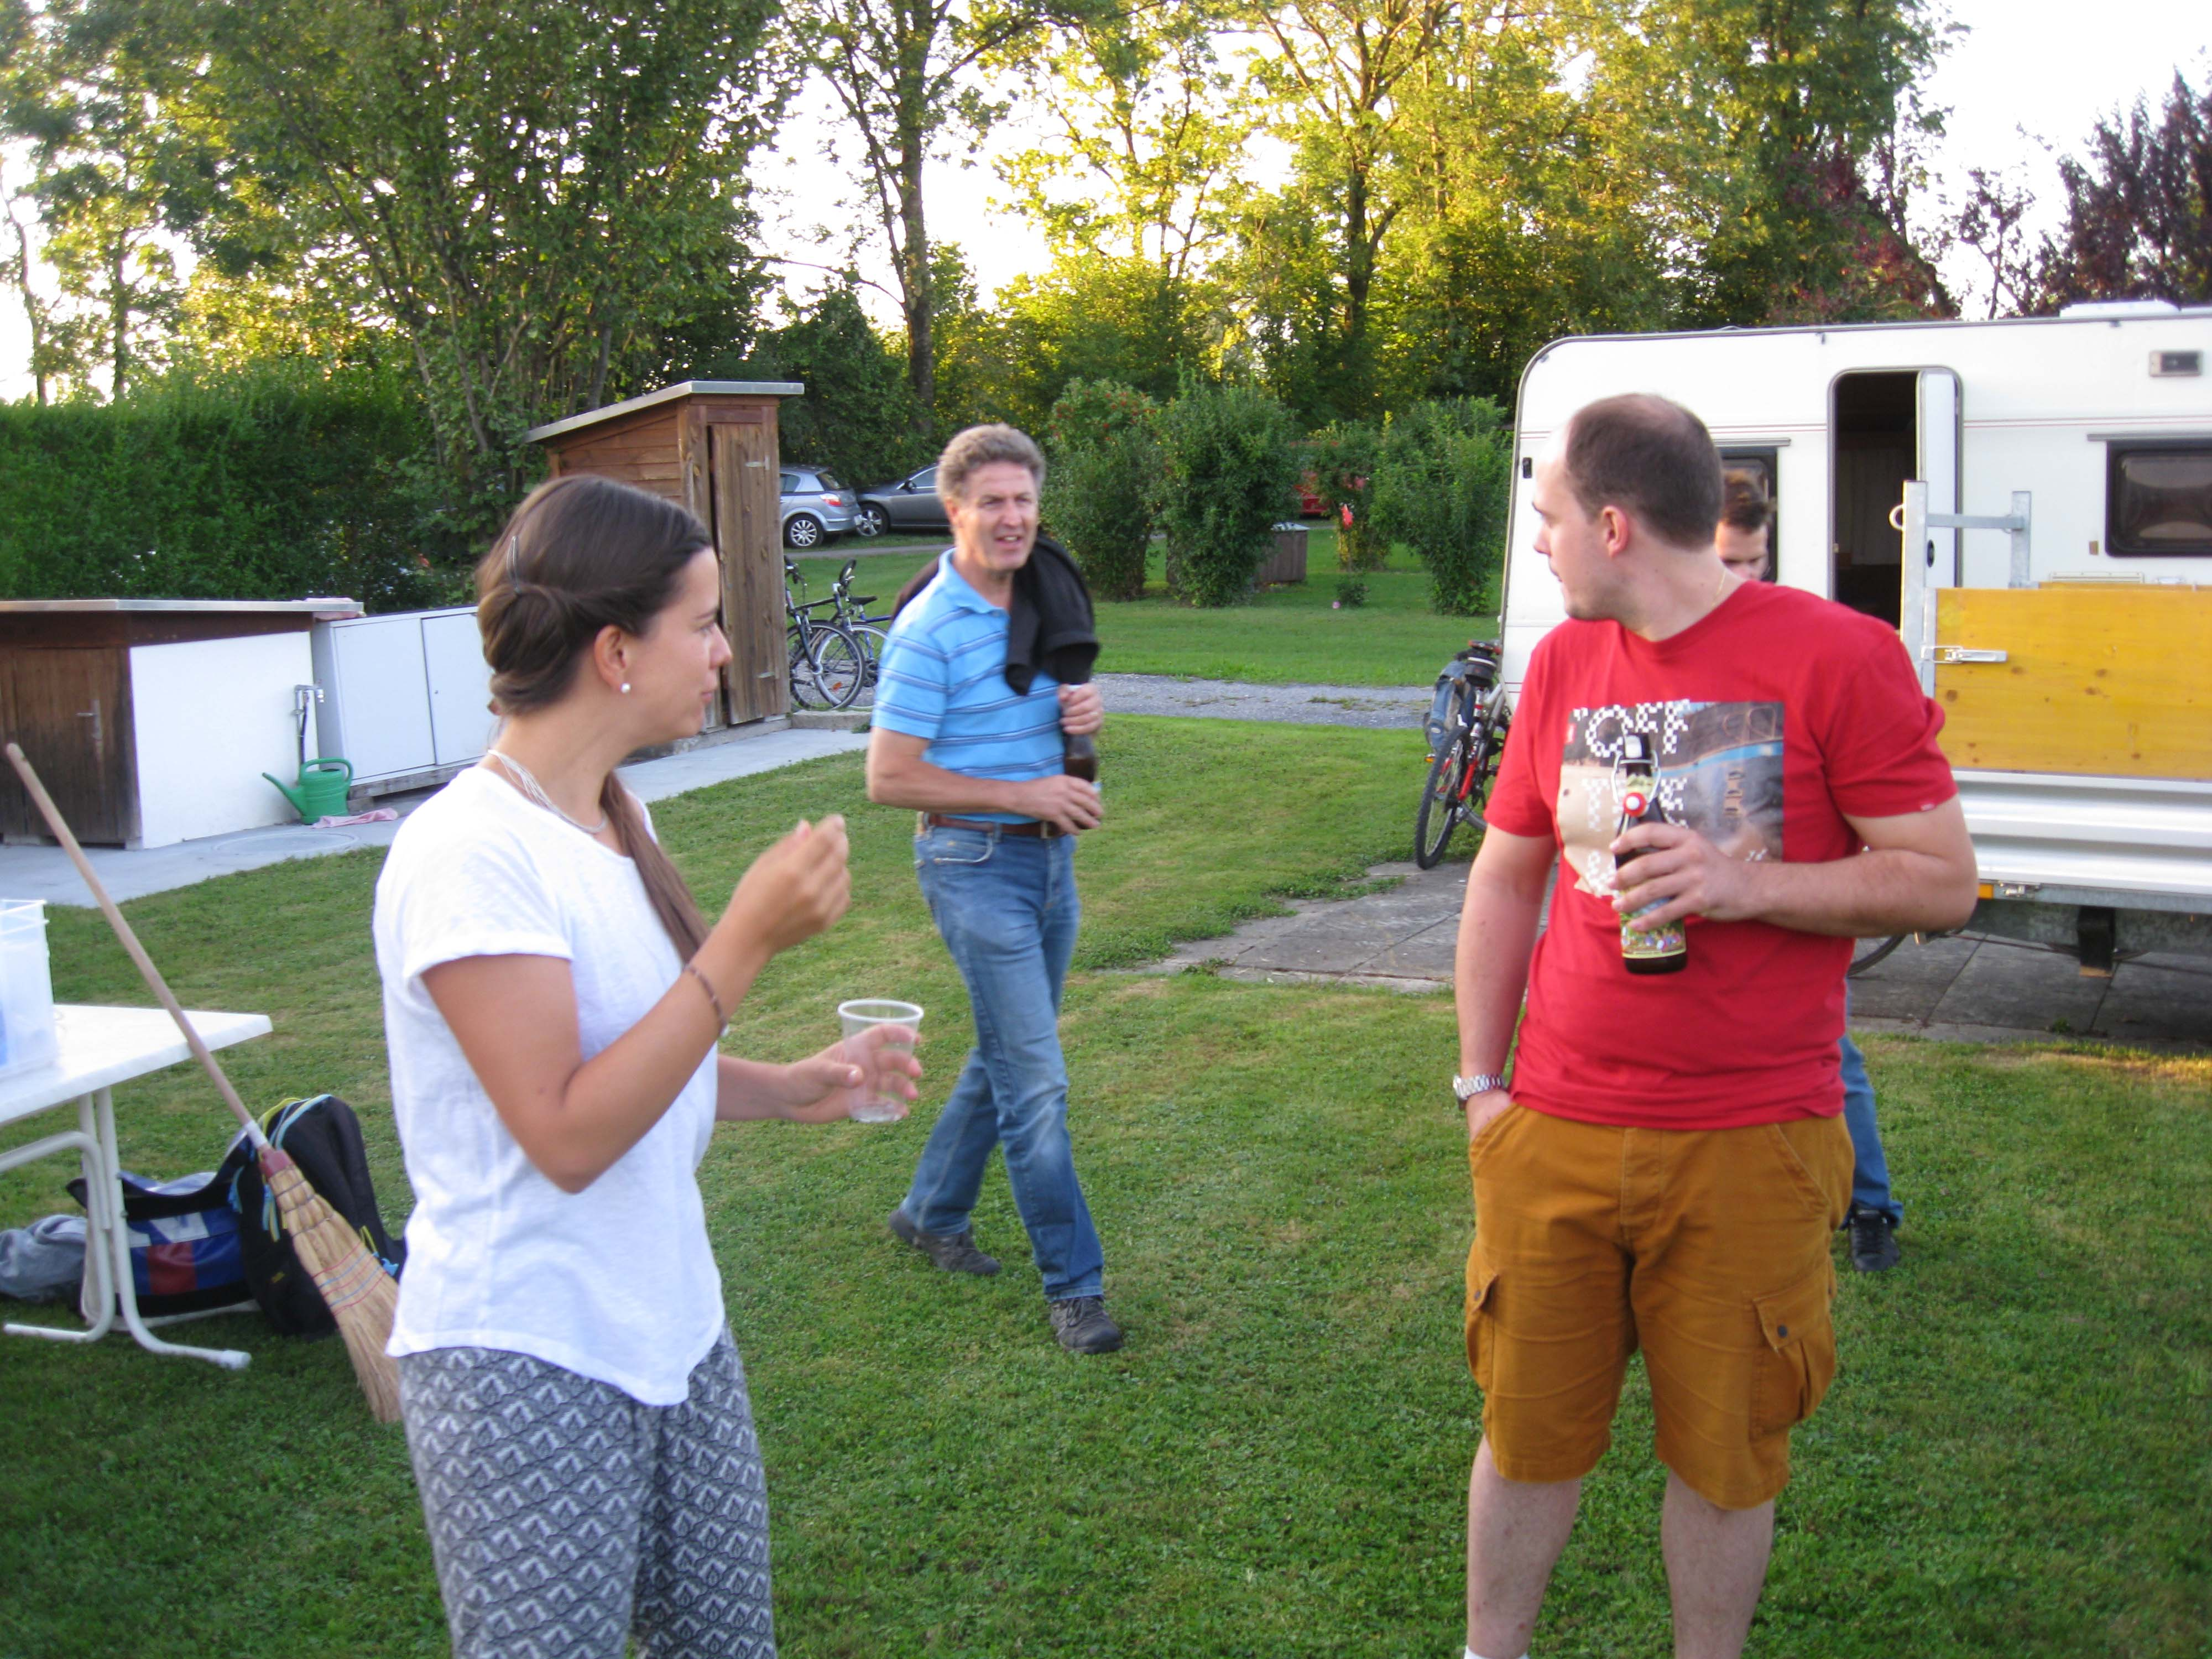 2015-08-21-1940-Raclette-Stampf-Rac-CE-lette-Stampf-IMG-CE-4505-web